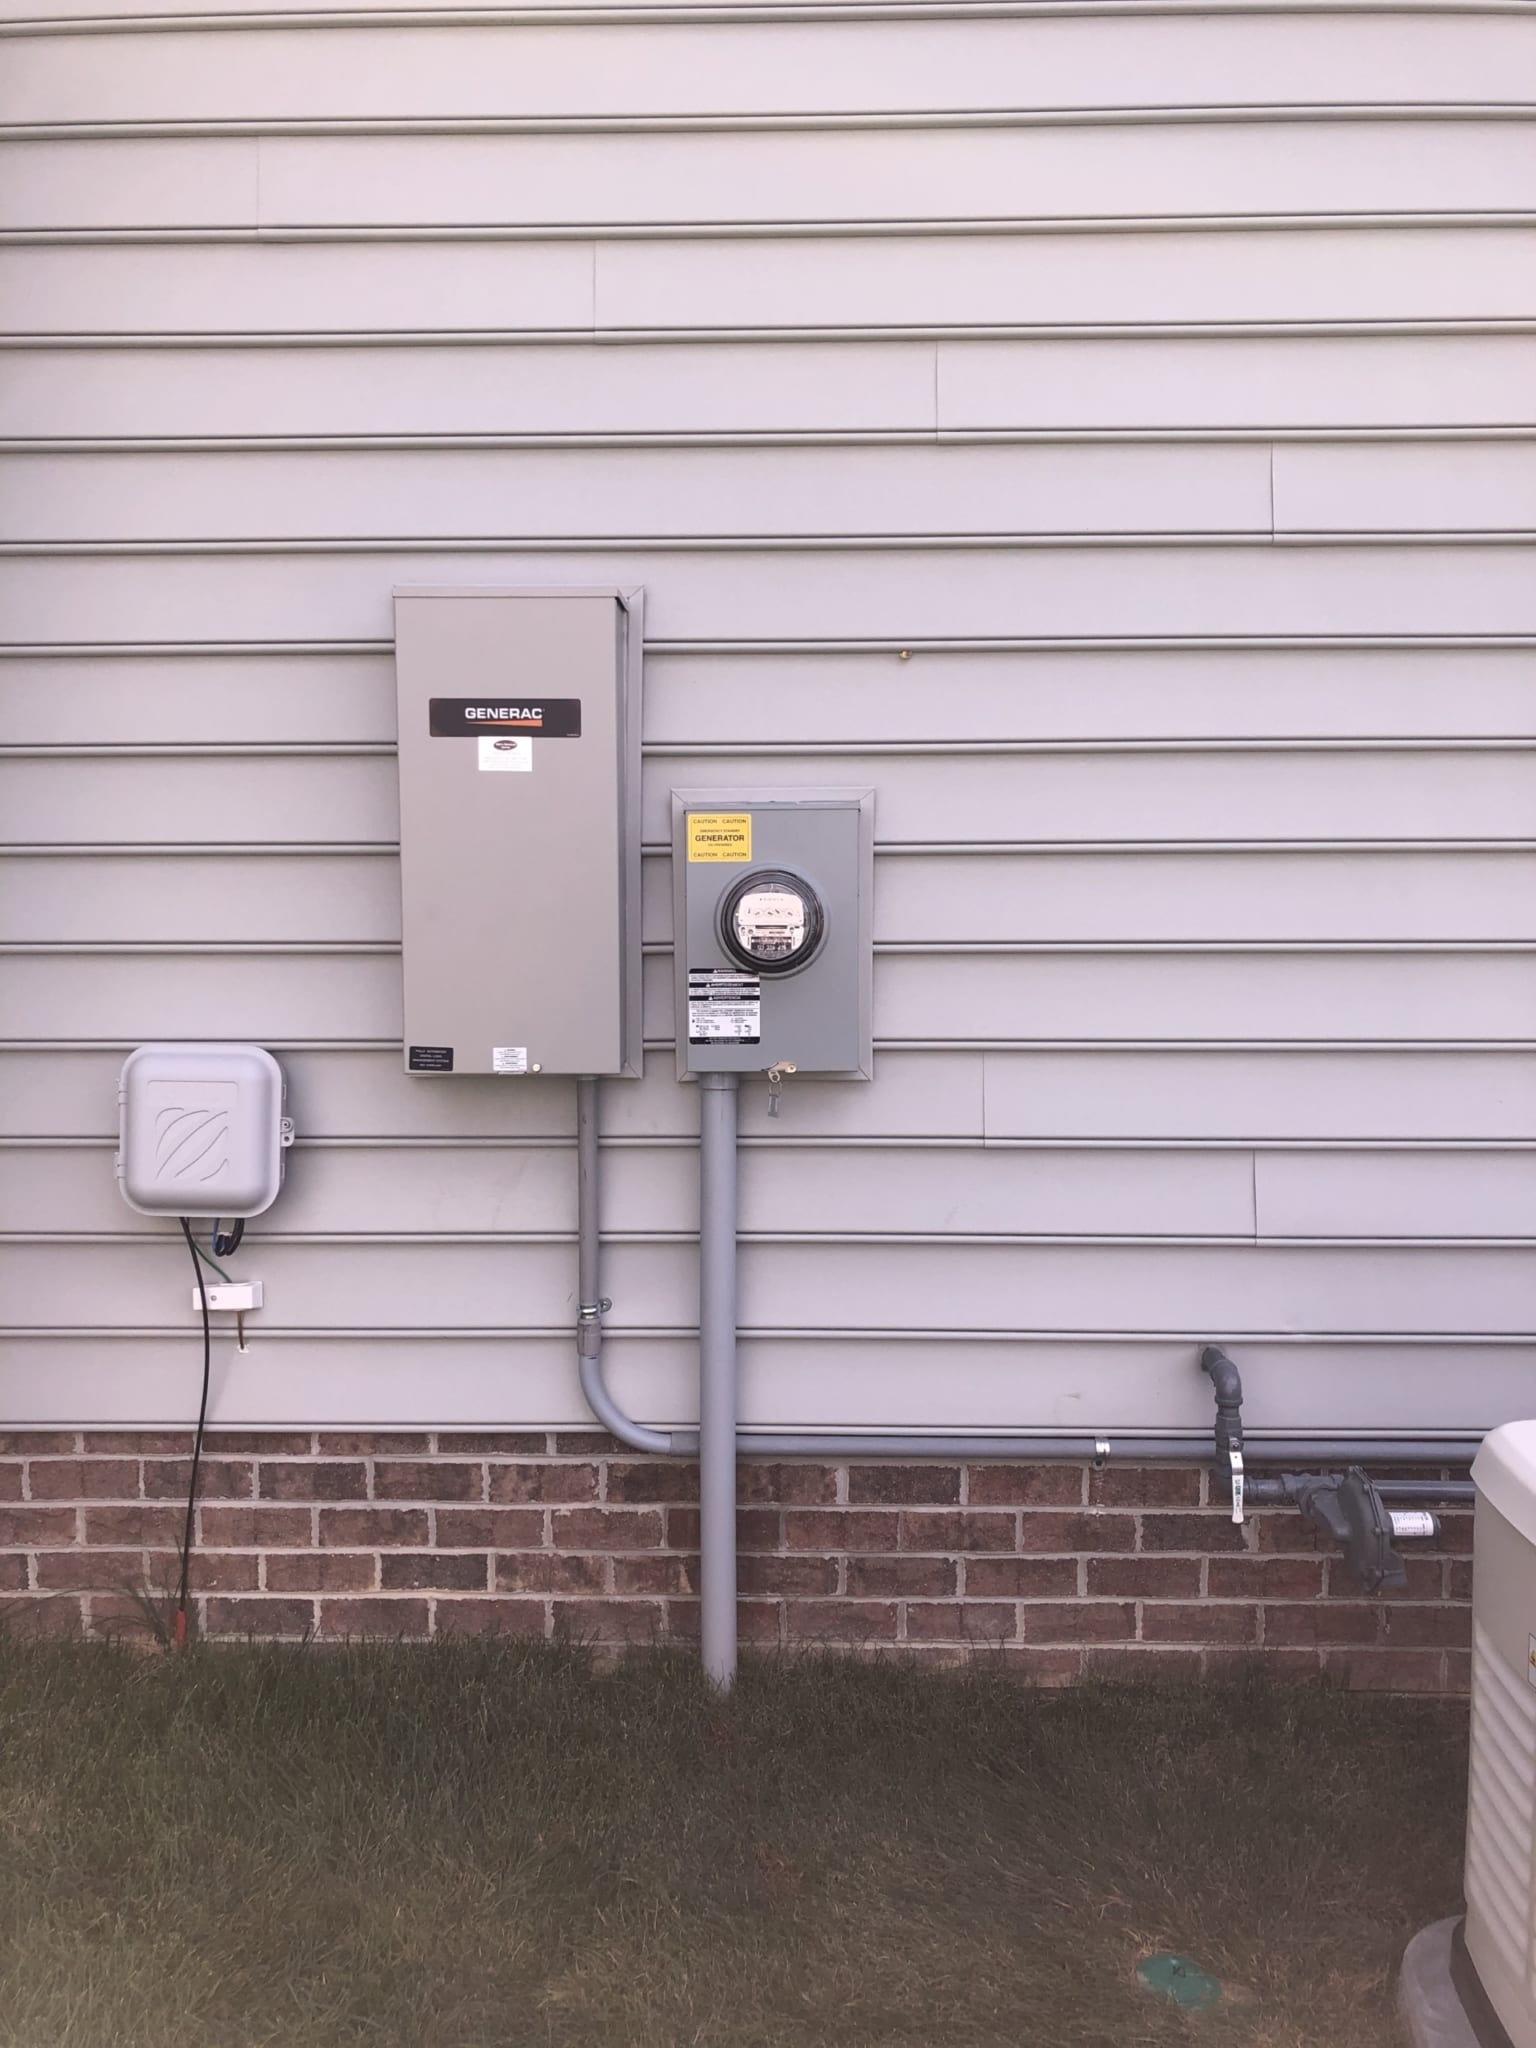 7.8.20 Chesterfield Generac Automatic Transfer Switch